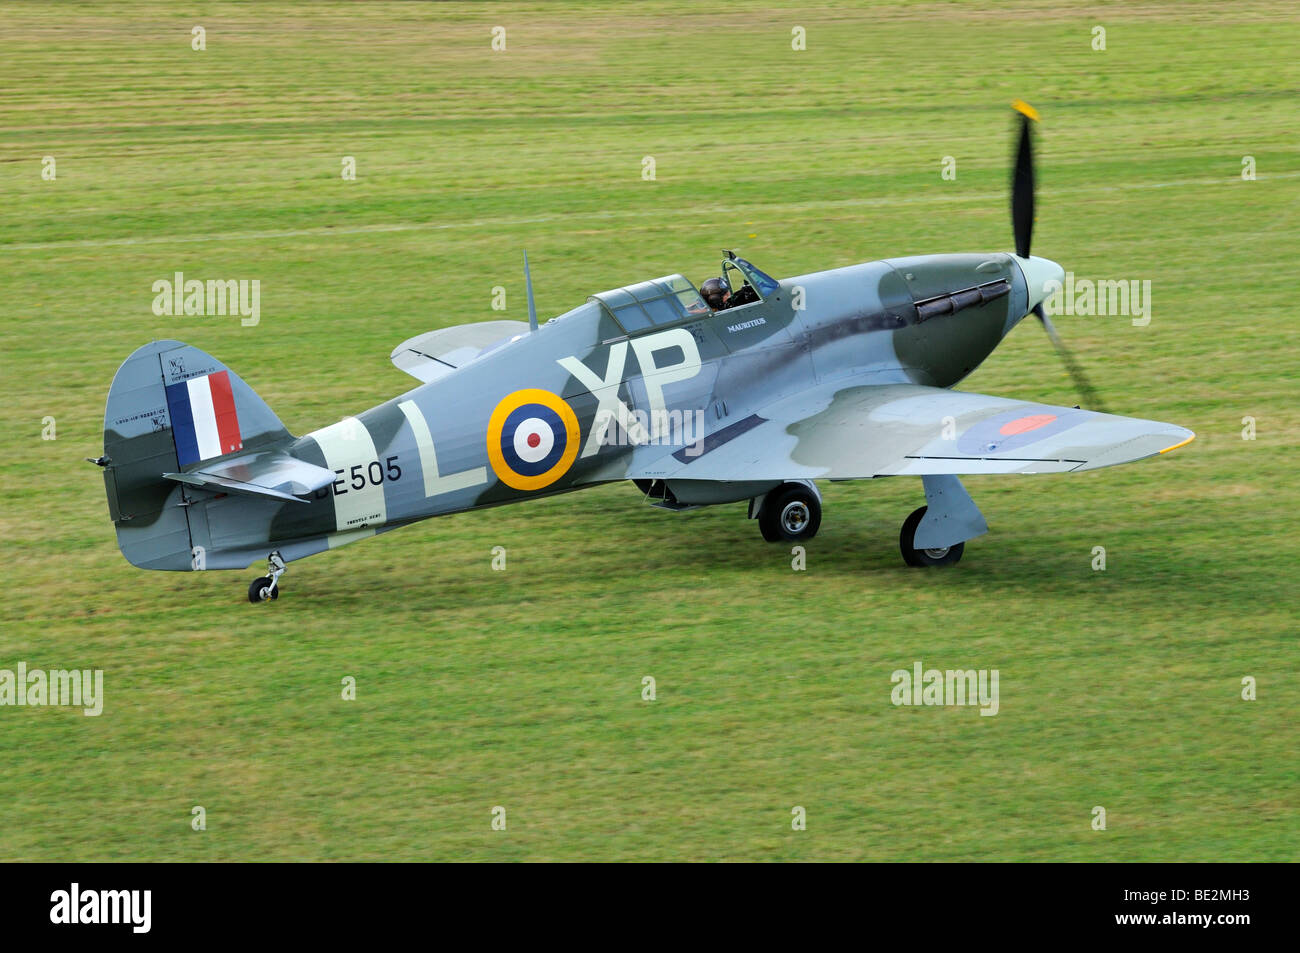 British Hawker Hurricane fighter aircraft, Europe's largest meeting of vintage planes at Hahnweide, Kirchheim - Stock Image